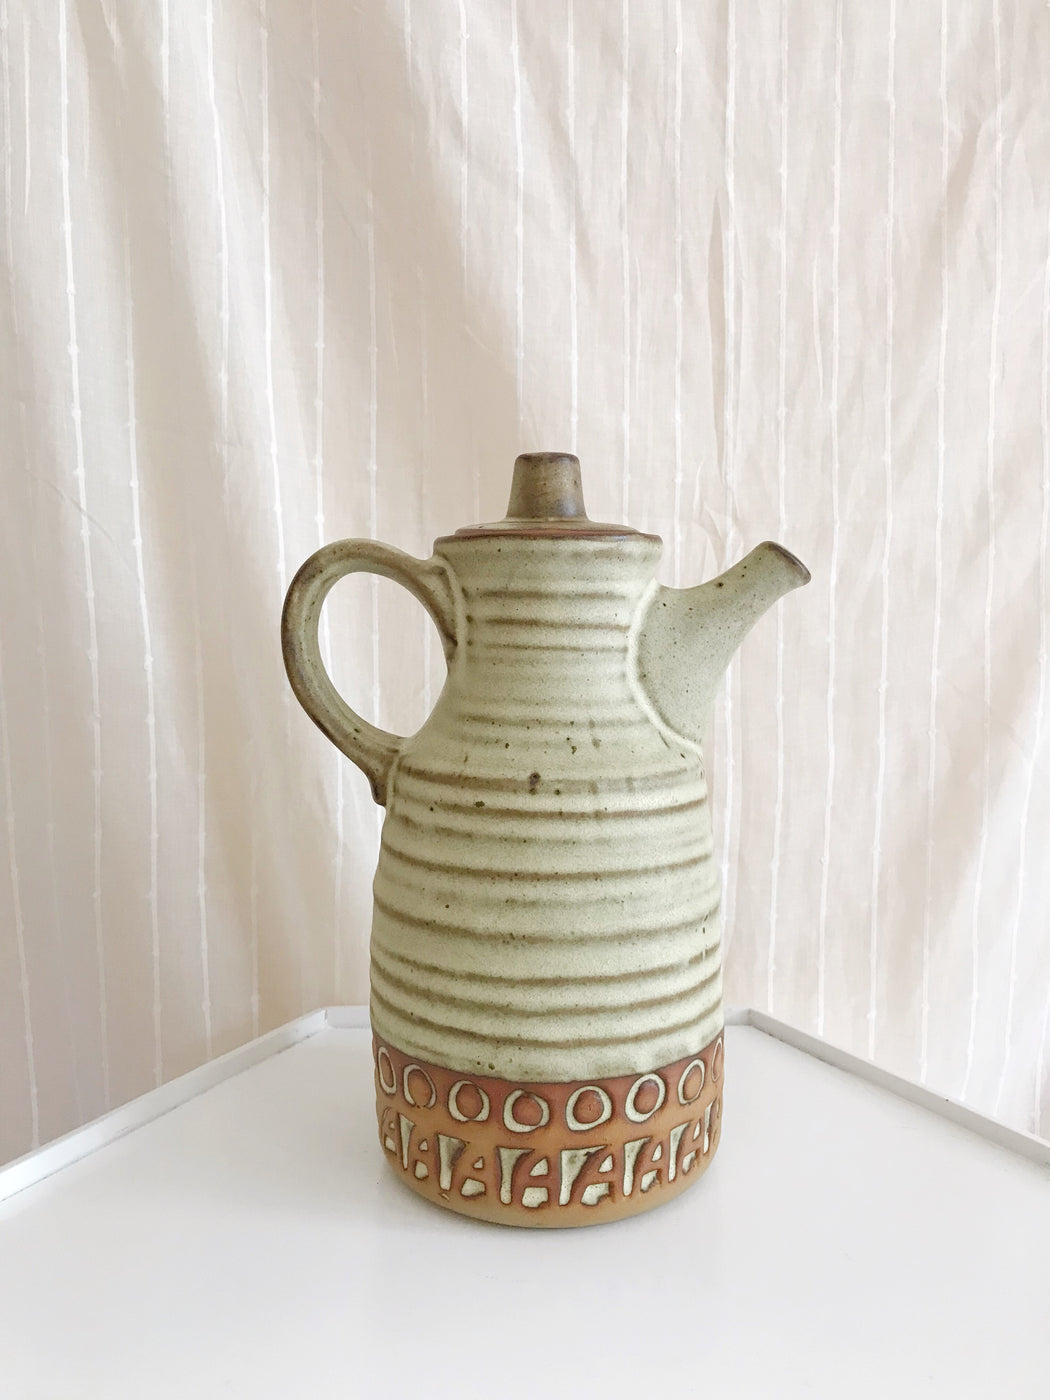 Vintage Pottery Tea Pot by Tremar Pottery | Storytellers Workshop